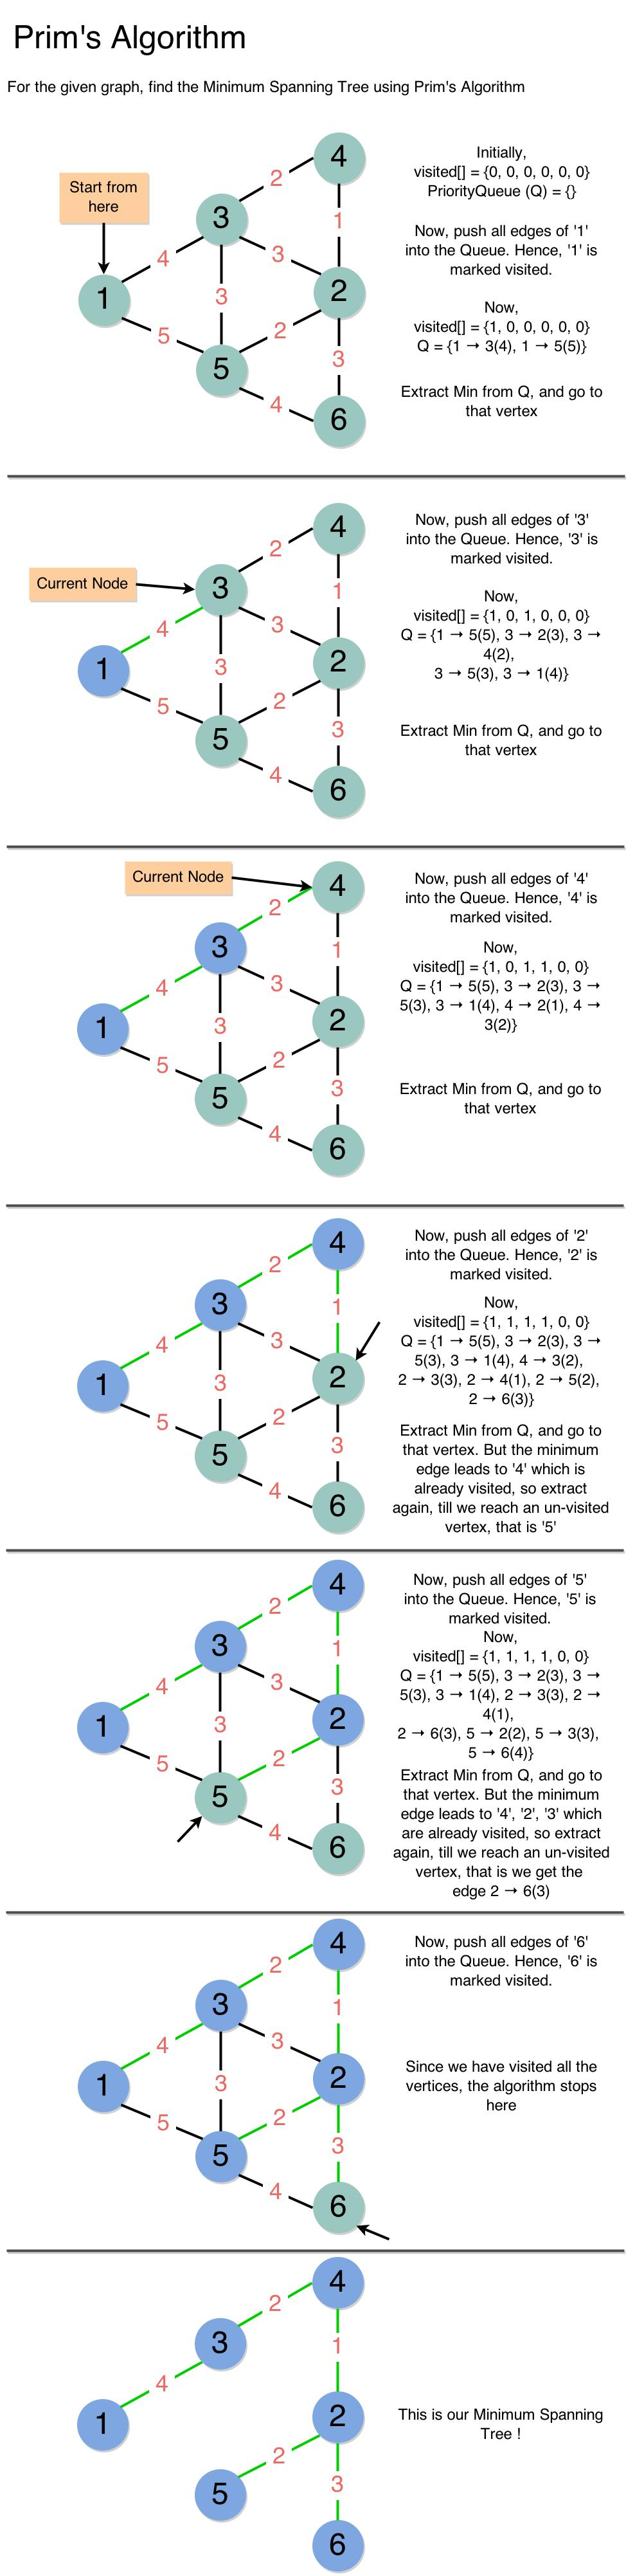 Prim's Algorithm Step-by-Step